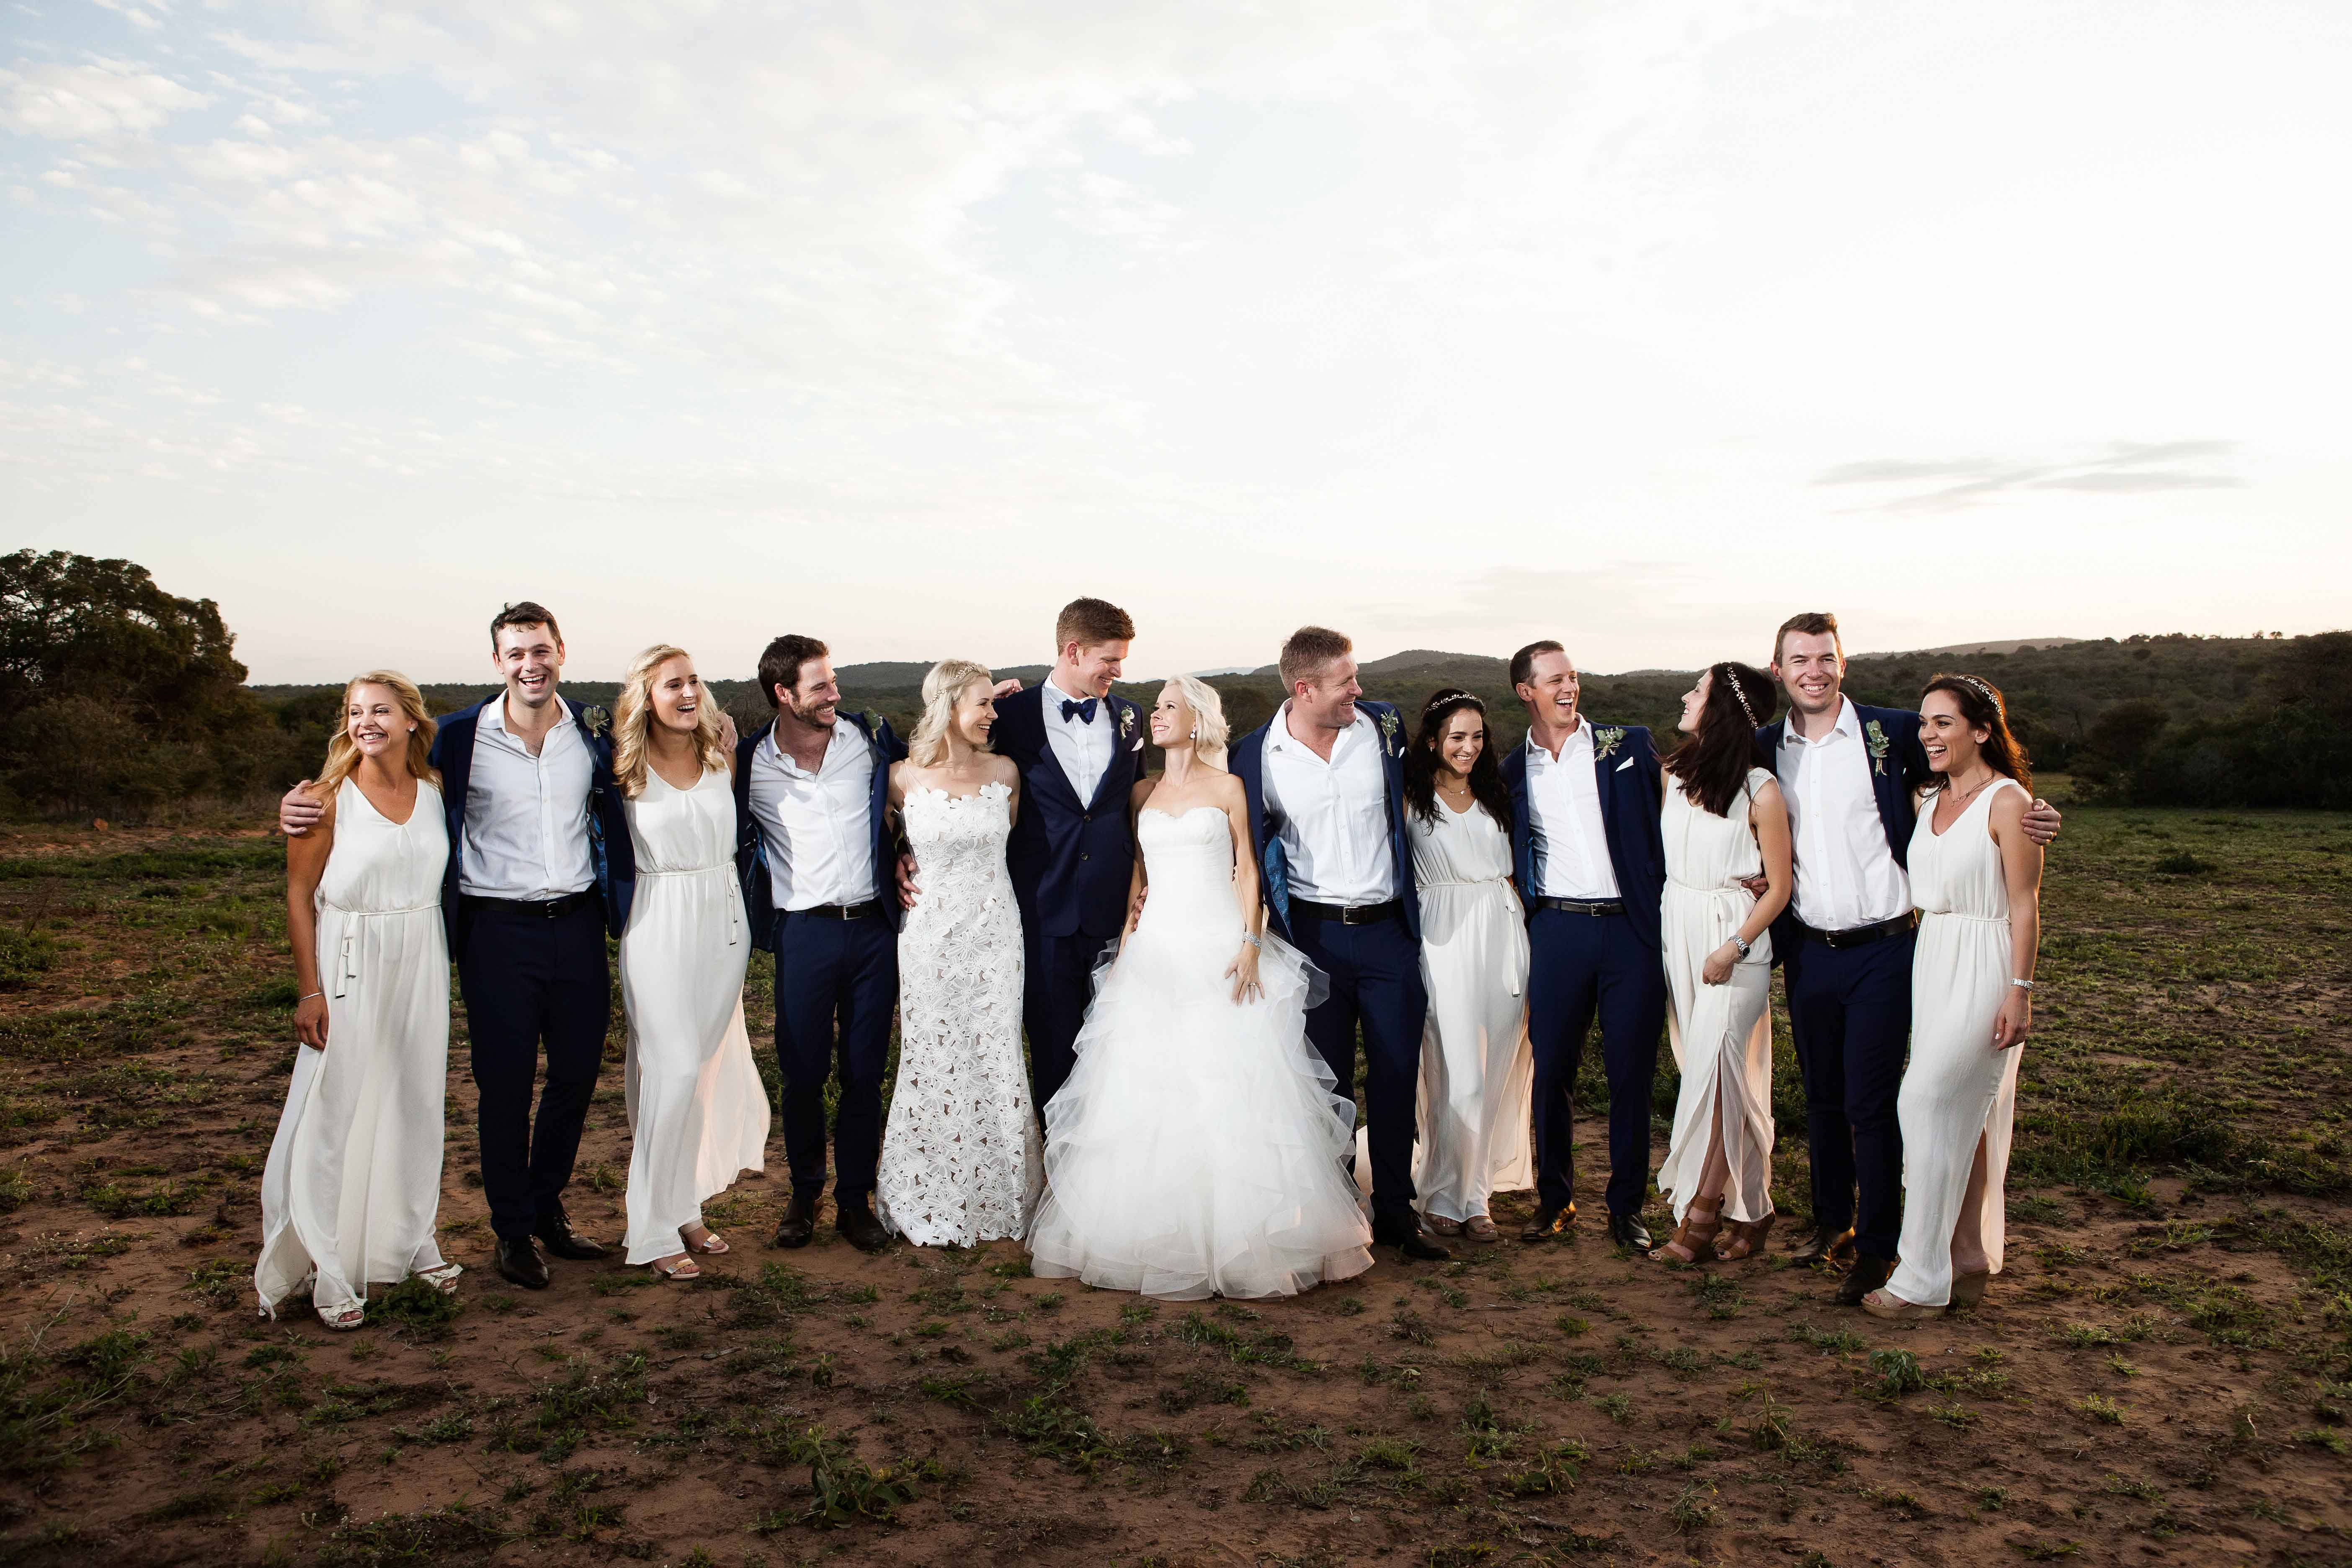 Navy blue groomsmen suits and white bridesmaid dresses